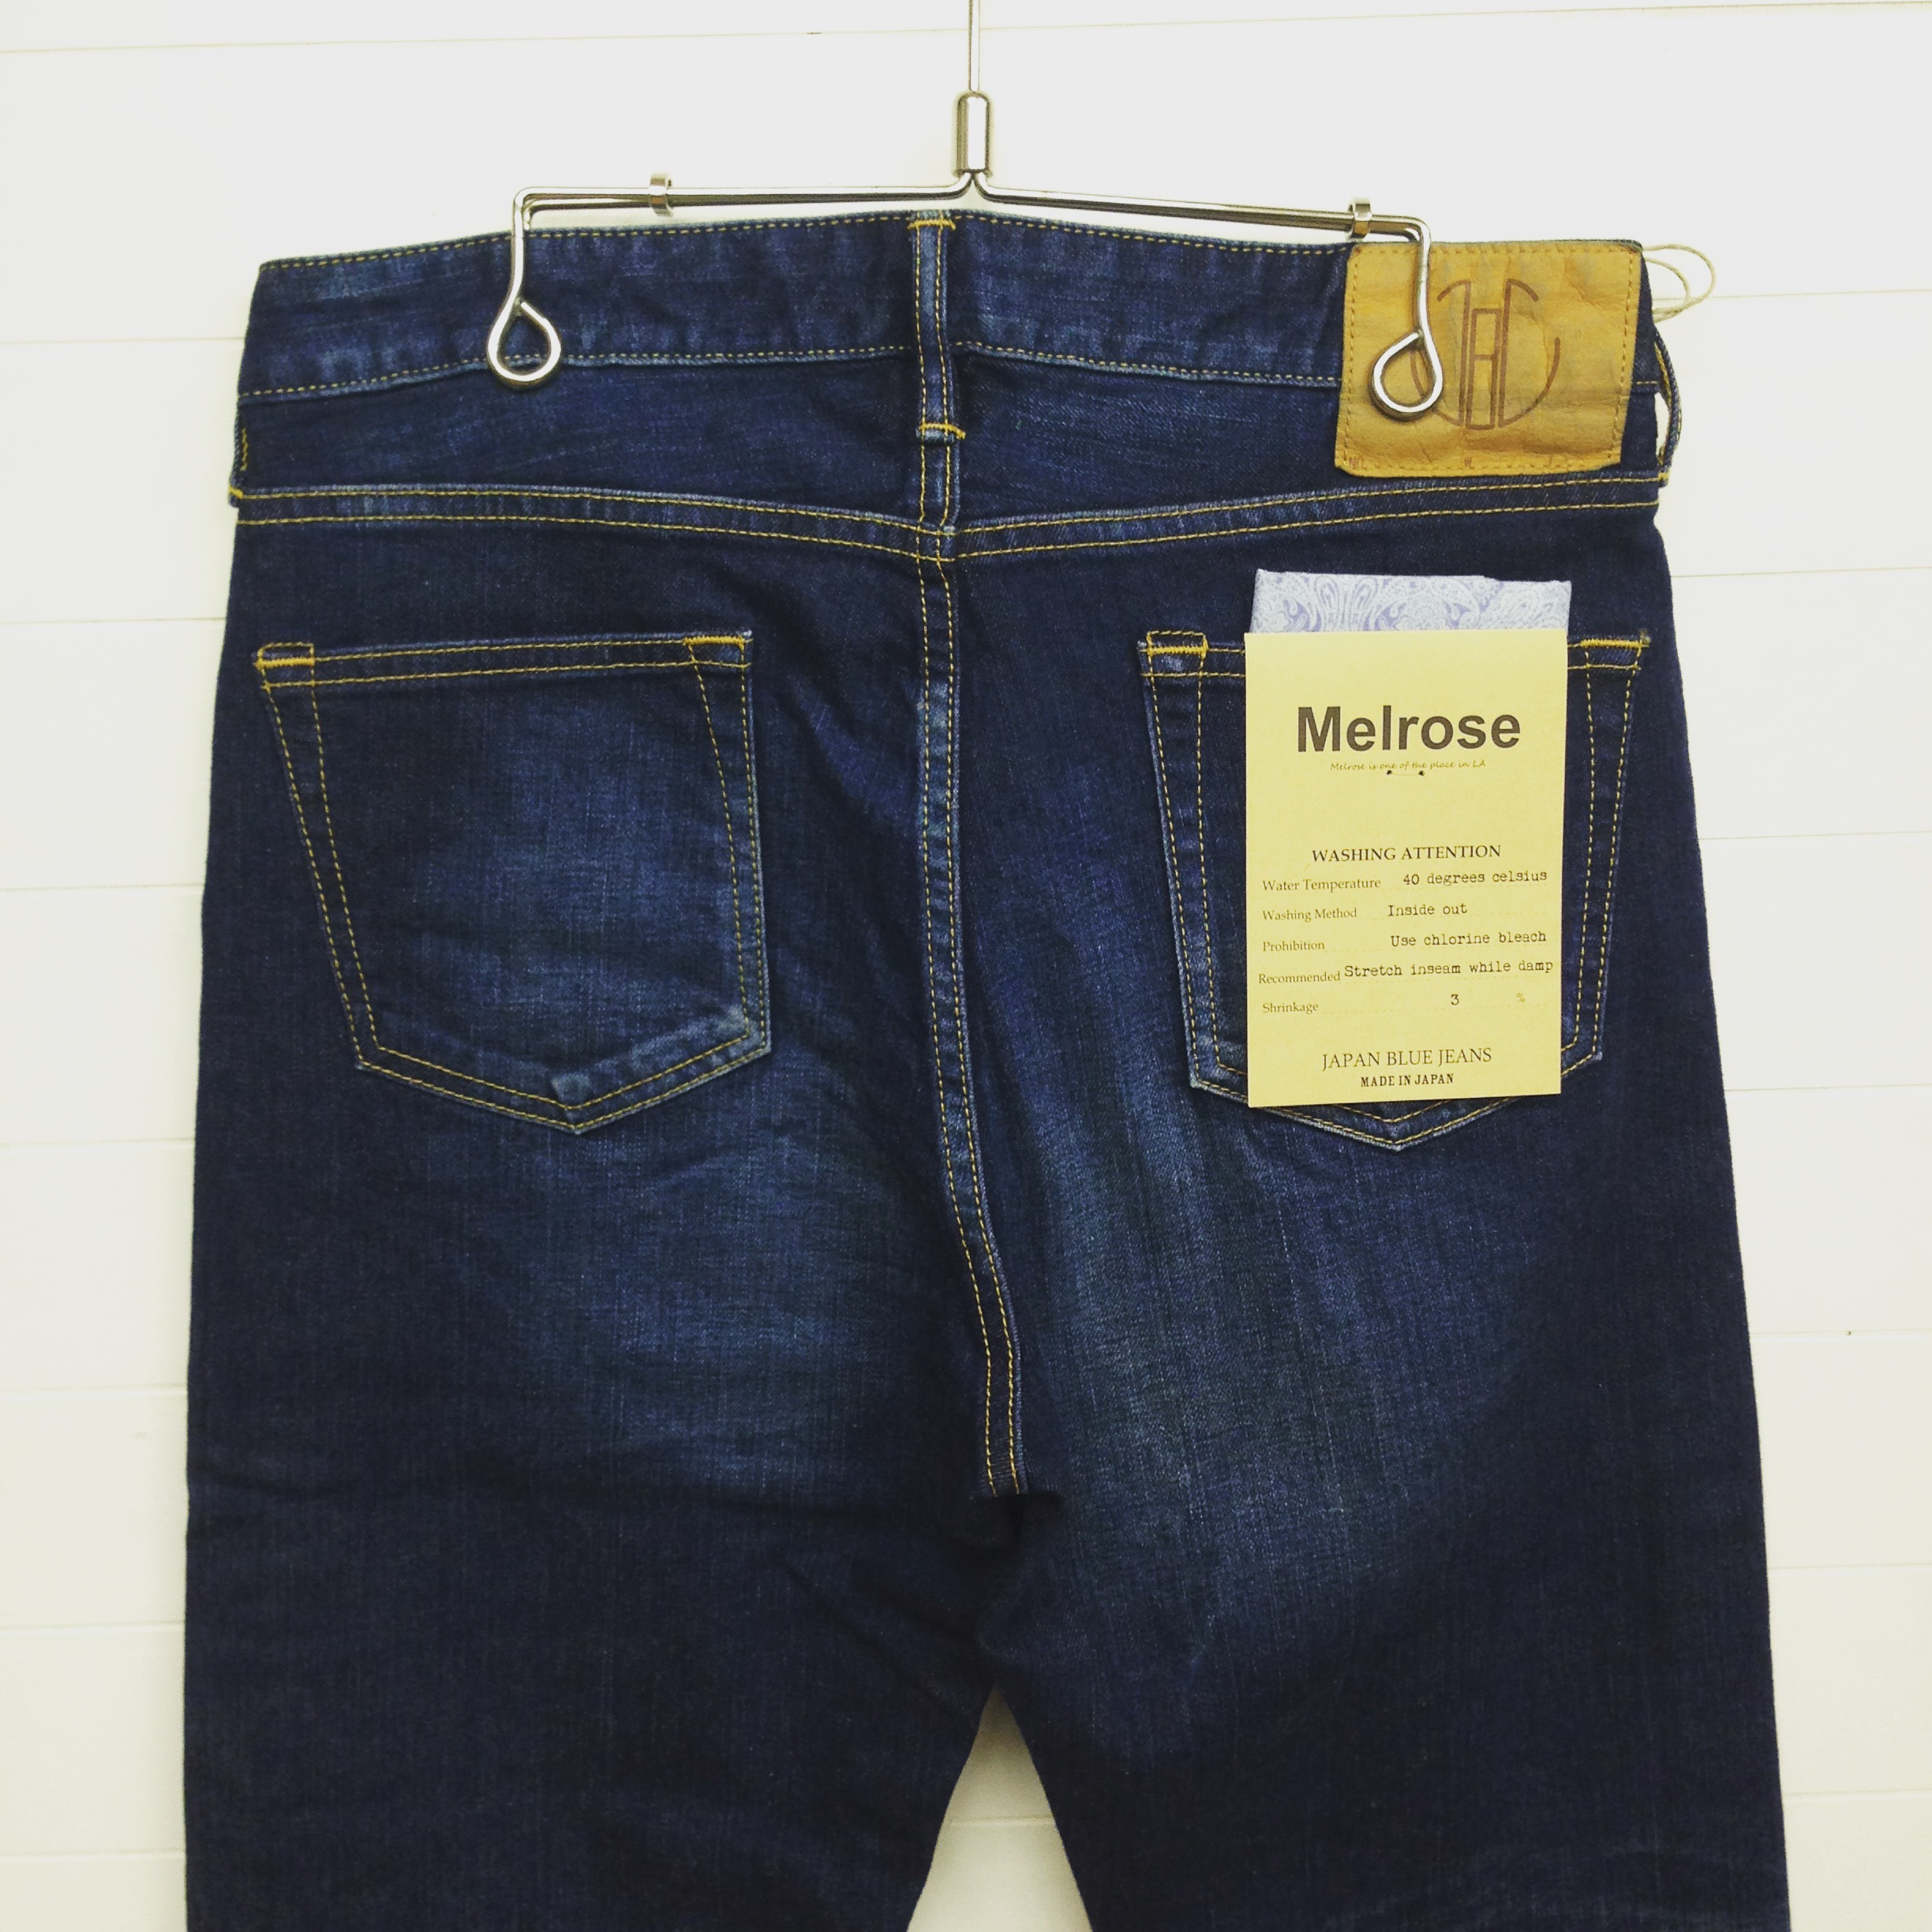 JAPAN BLUE JEANS(ジャパンブルージーンズ) 12.5oz PREP DENIM 12oz CALIF DENIM MELROSE JB2301ME